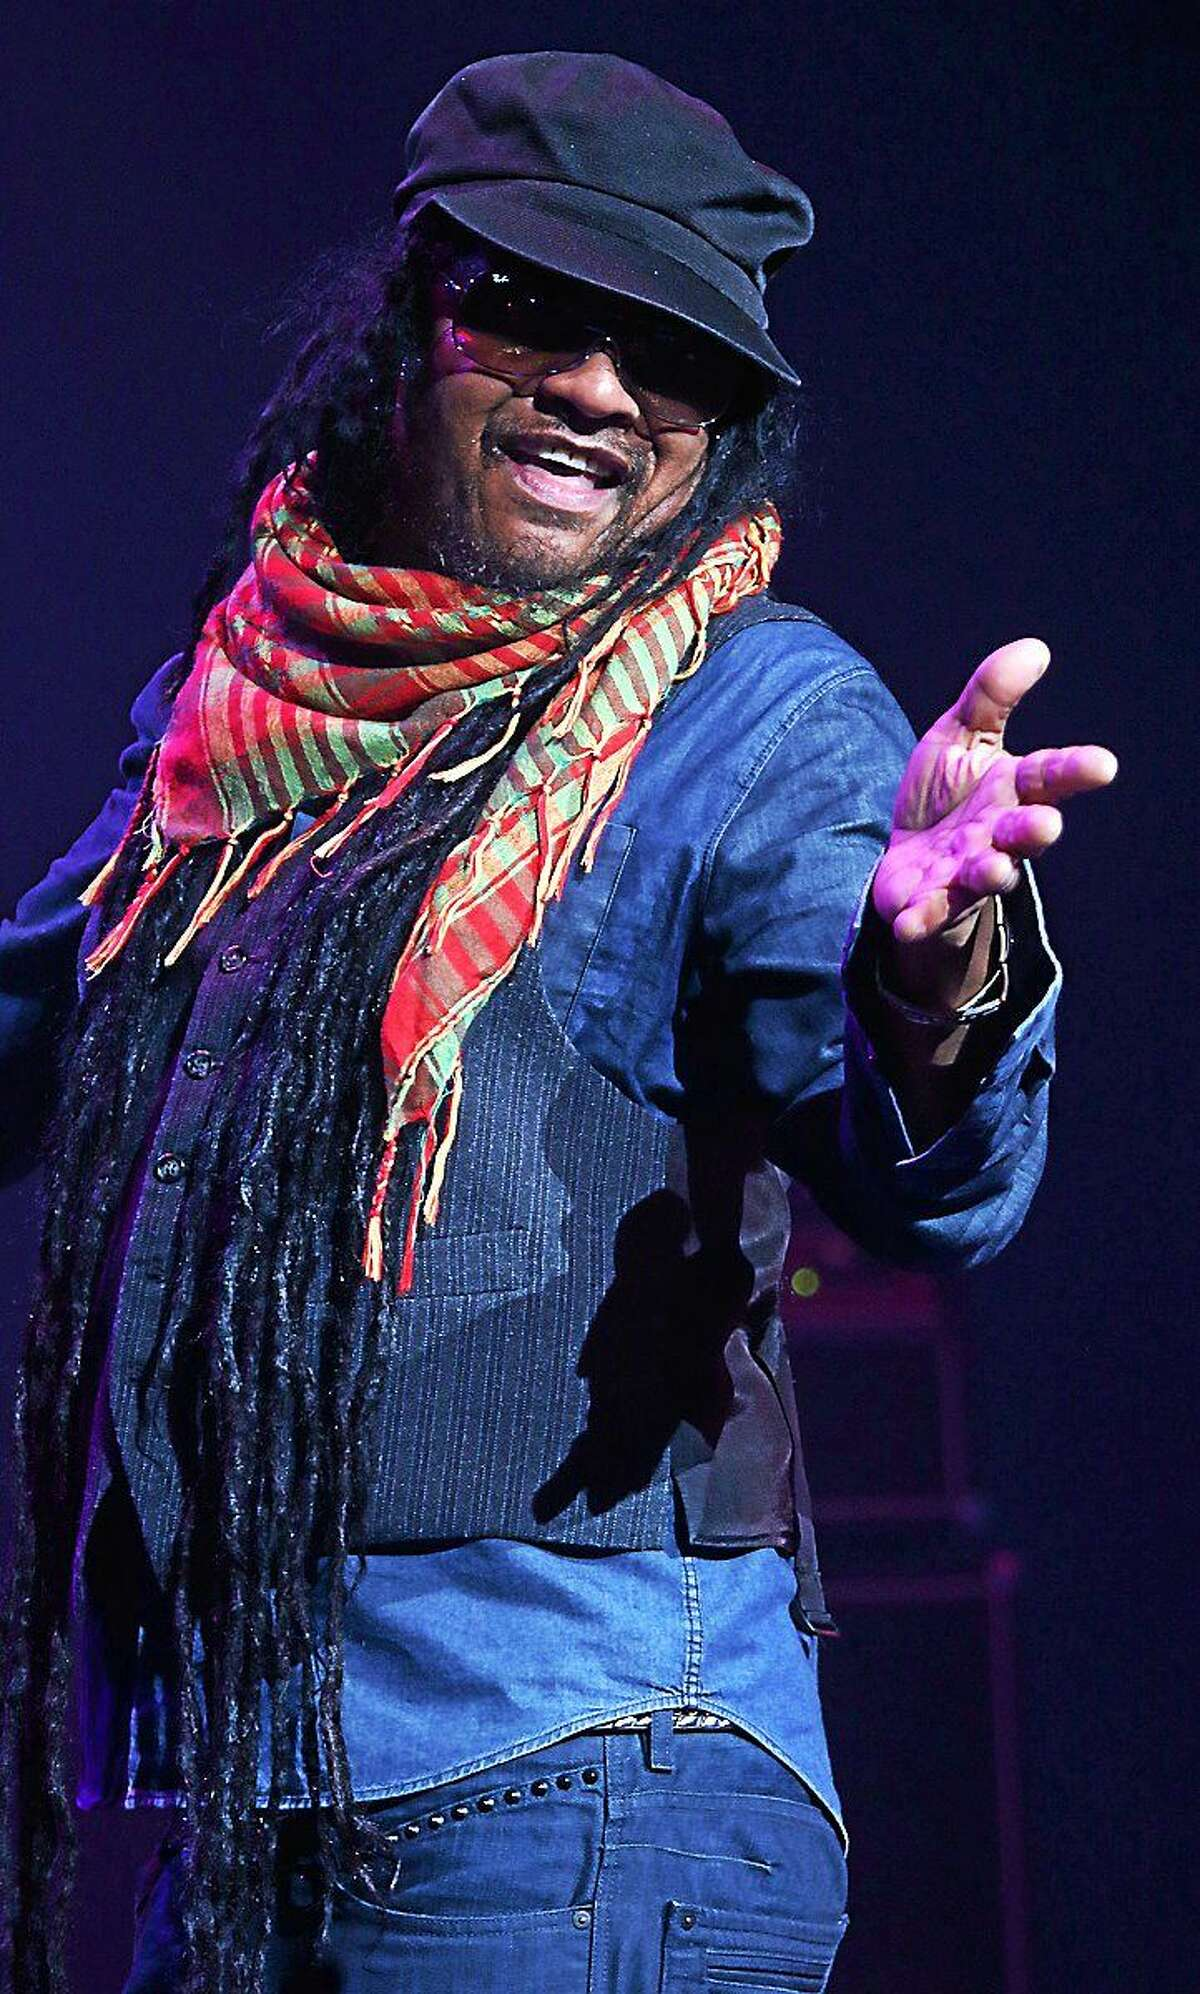 Photo by John Atashian British reggae singer of Jamaican descent, Maxi Priest, is shown entertaining his fans while performing on stage at the Foxwoods Resort & Casino in Mashantucket on April 11, 2015. His show was all part of the ìReggae Riddims Iî concert which also featured performances by Shaggy, Sanchez and more. The ìReggae Riddims IIî event is now scheduled for September 26th and will feature ìliveîperformances by Sean Paul, Beenie Man, Chaka Demus & Pliers, Third World, Lady Shaw and more. For tickets or more information on Reggae Riddums II or to learn about all of the entertainment coming to Foxwoods call 800-200-2882 or you can visit www.foxwoods.com